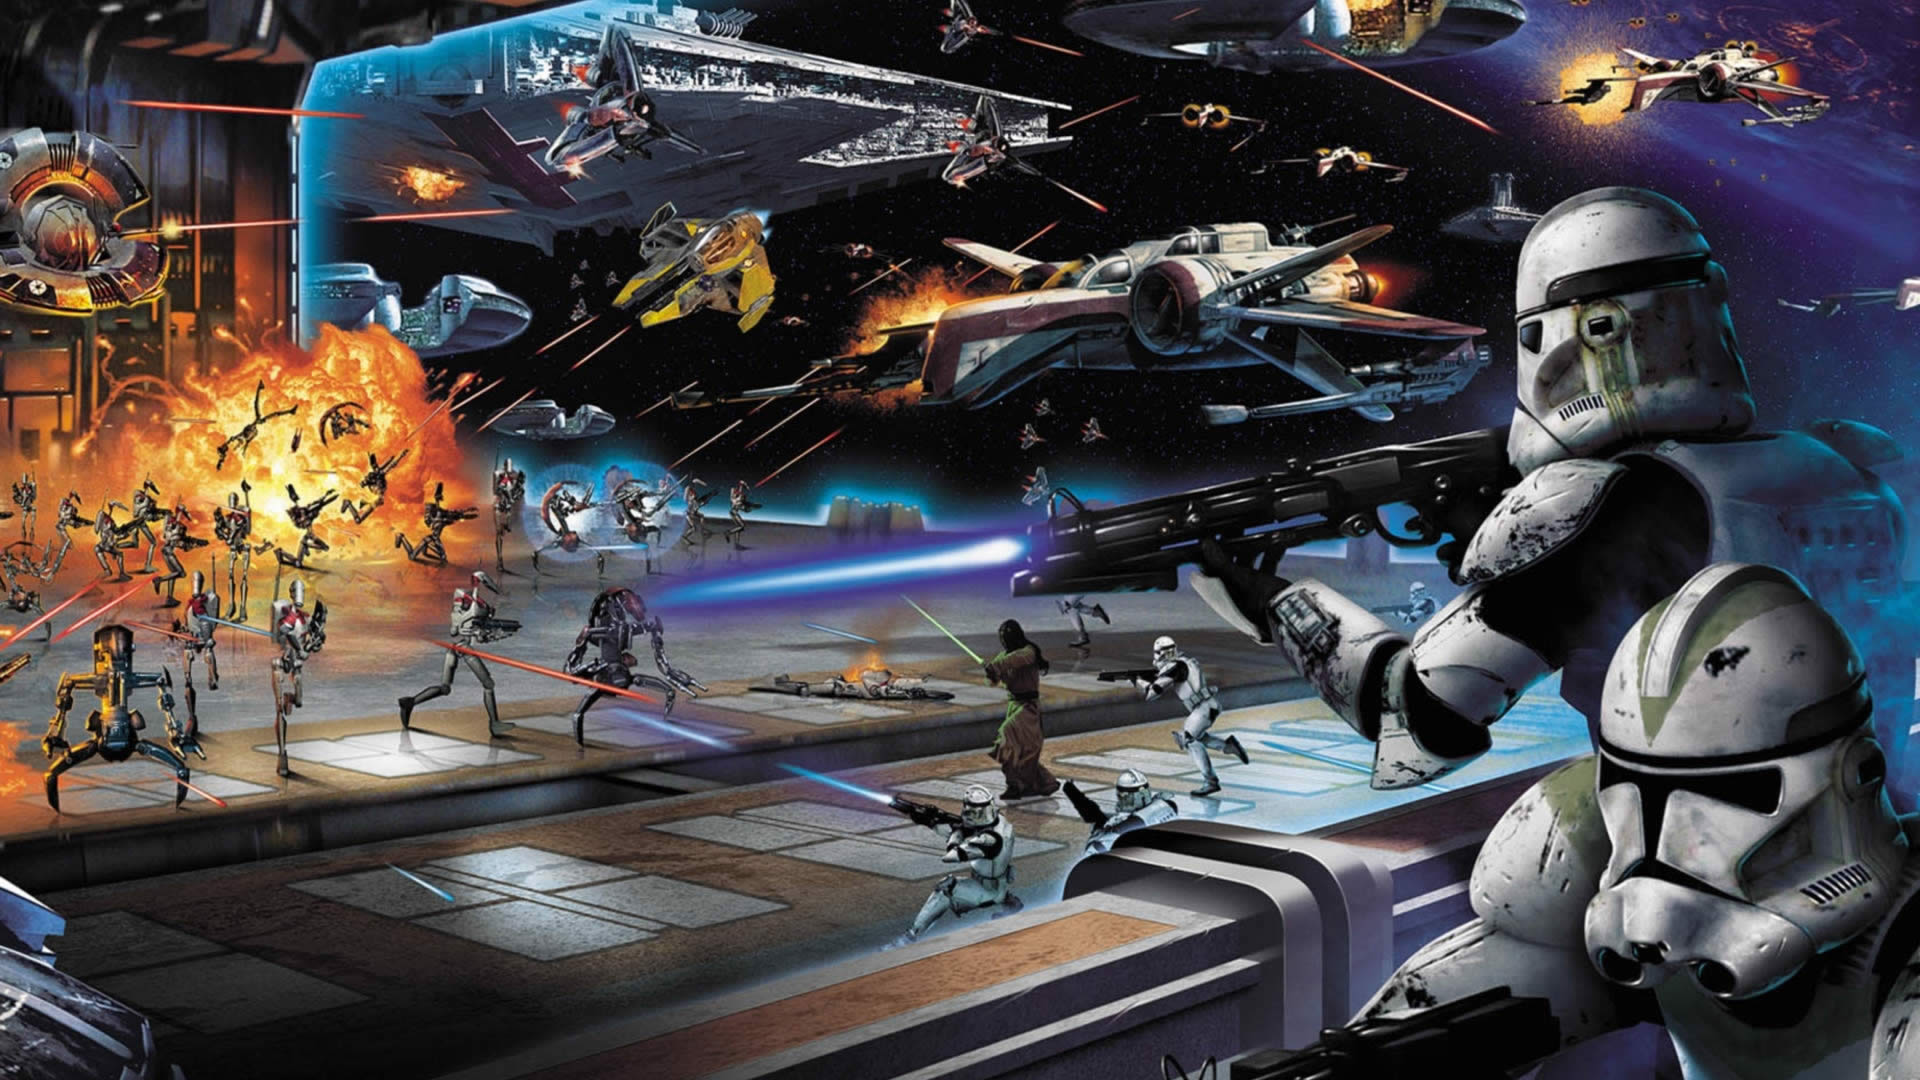 Star Wars Battles Wallpapers Wallpaper Cave